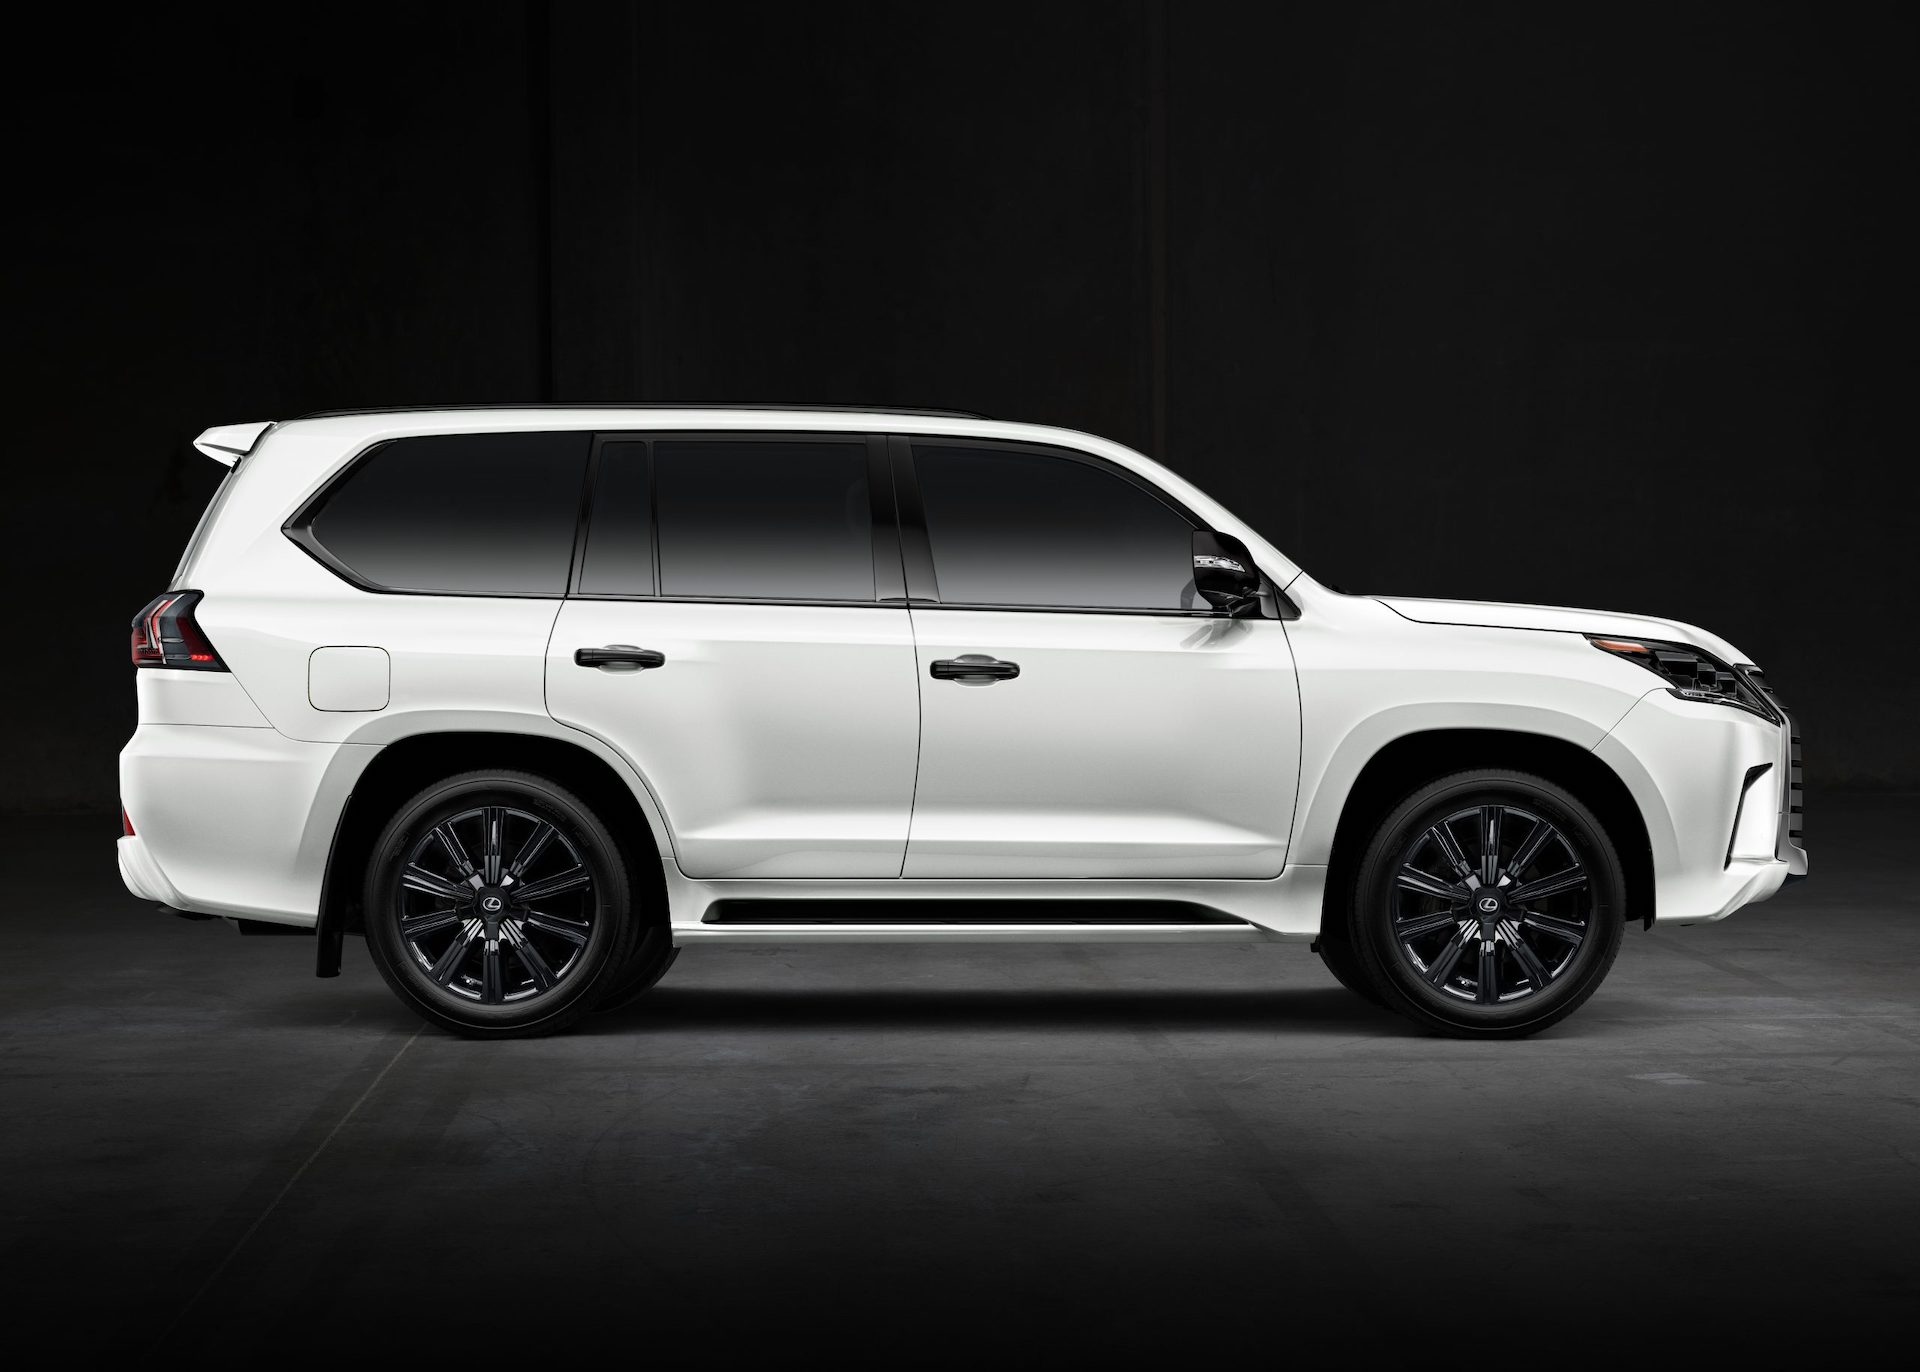 New And Used Lexus Lx Prices Photos Reviews Specs The Car Connection